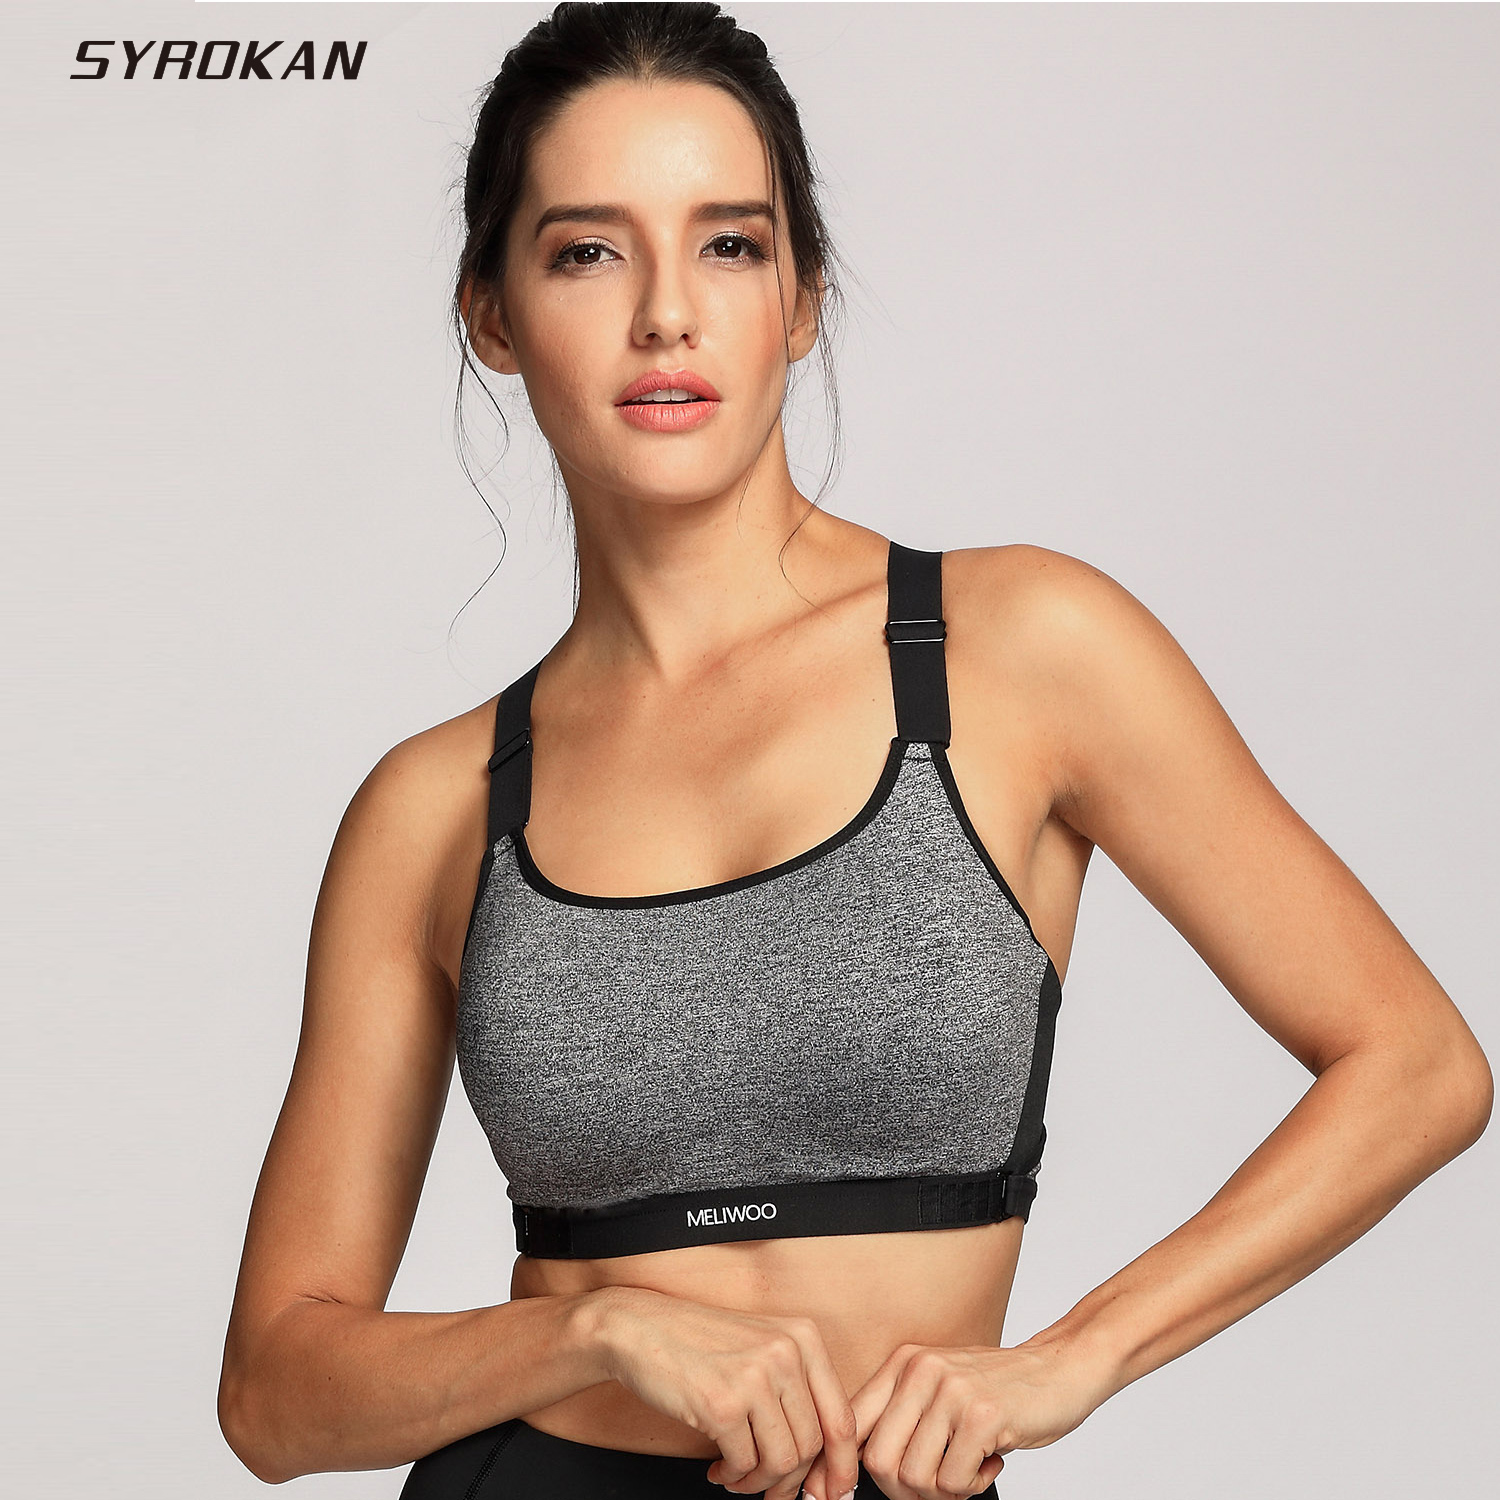 SYROKAN Women's High Impact Padded Racerback Ultra Support Pro Sports Bra недорго, оригинальная цена